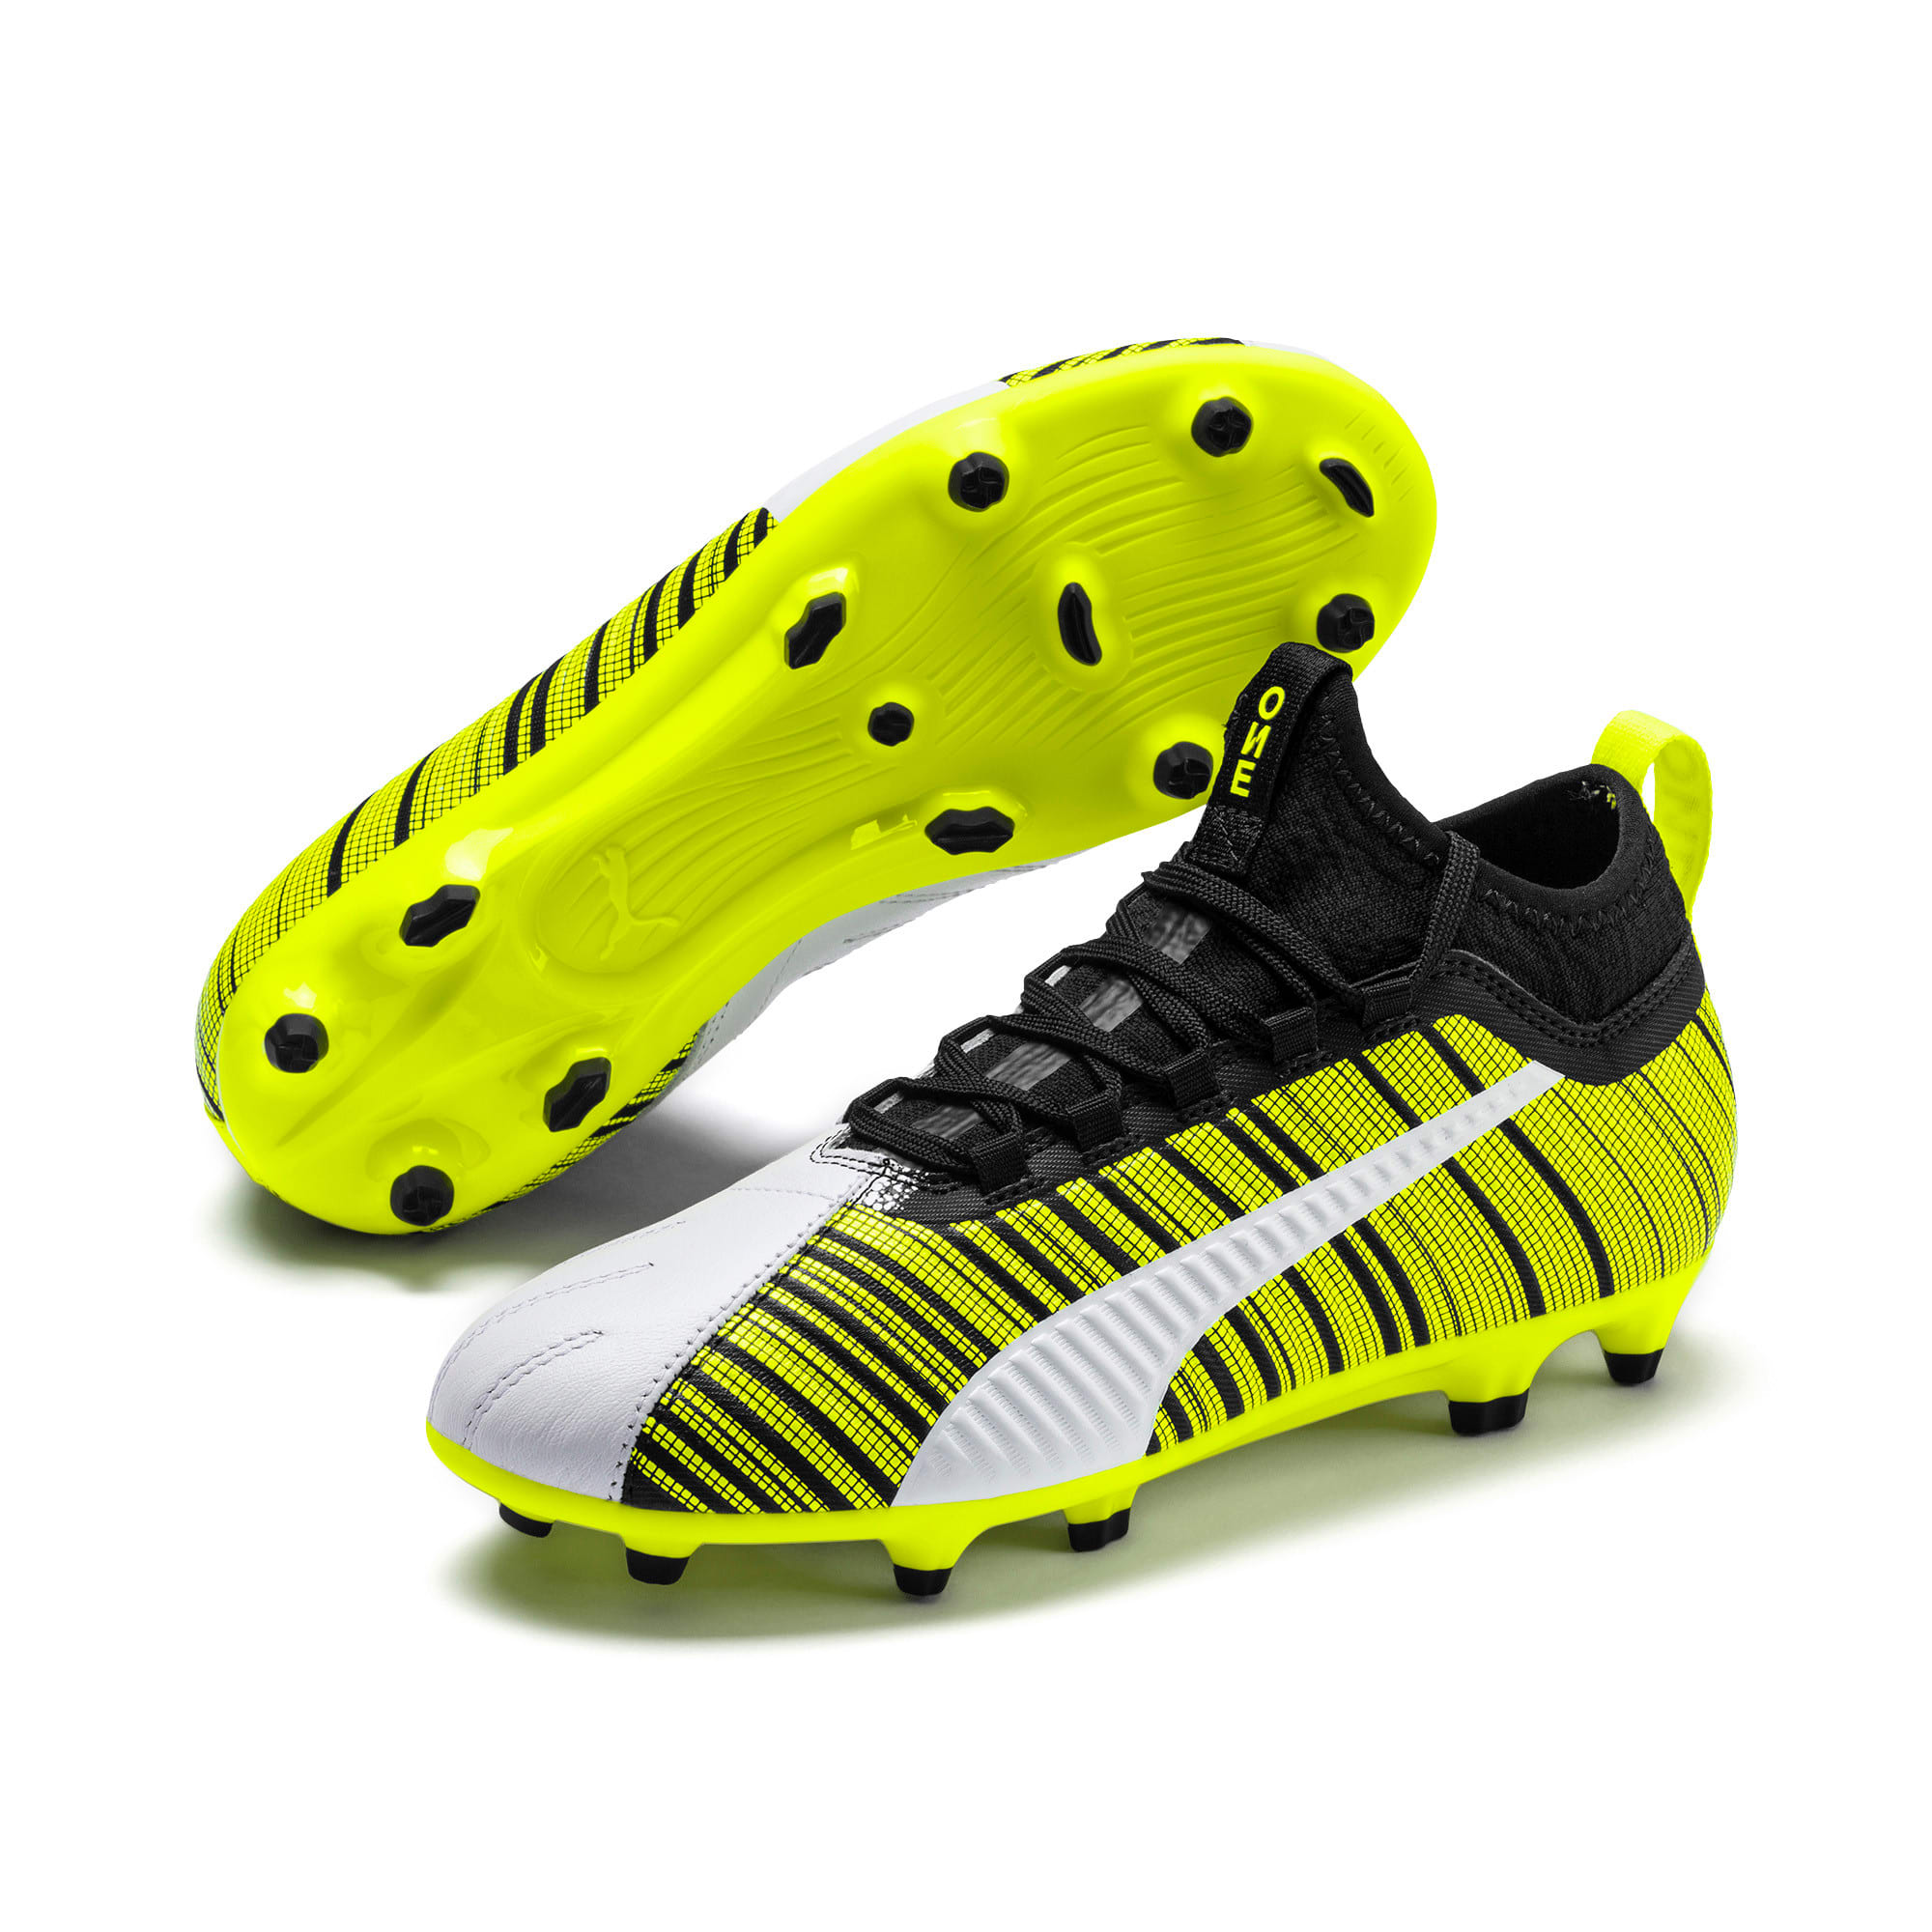 Thumbnail 2 of Chaussure de foot PUMA ONE 5.3 FG/AG Youth, White-Black-Yellow Alert, medium